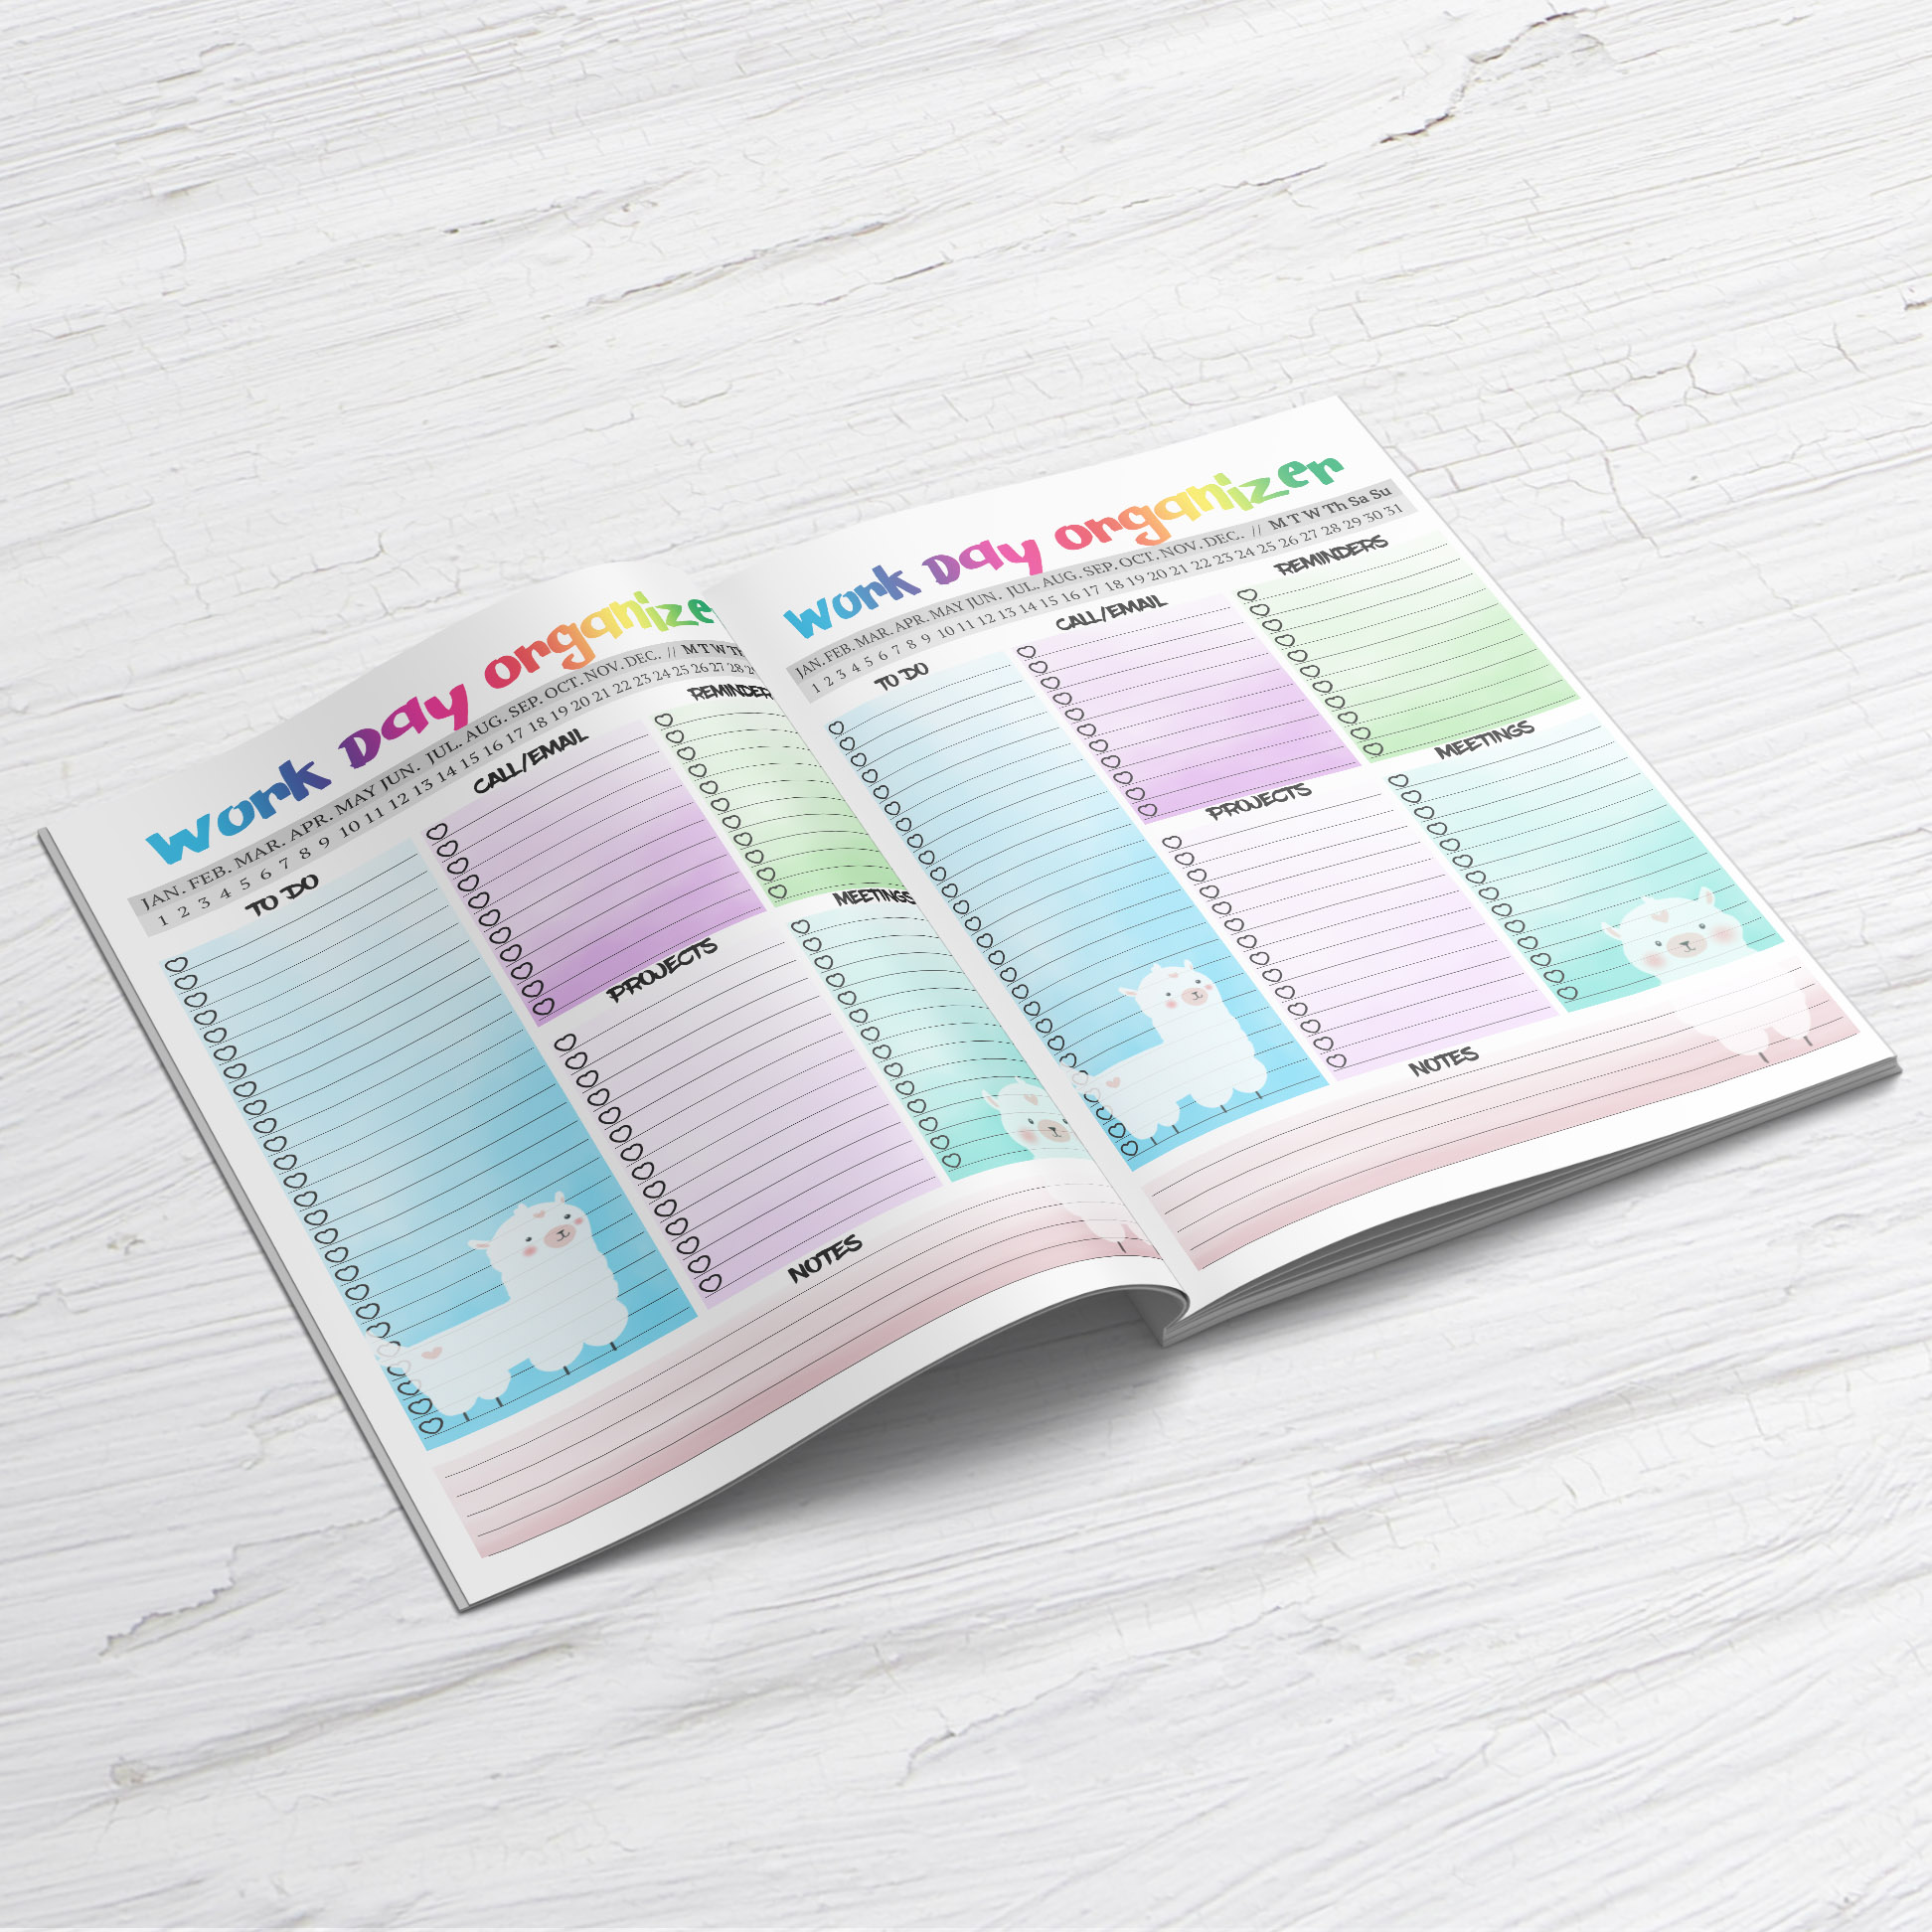 Llama daily Planner Printable Work day planner insert example image 6